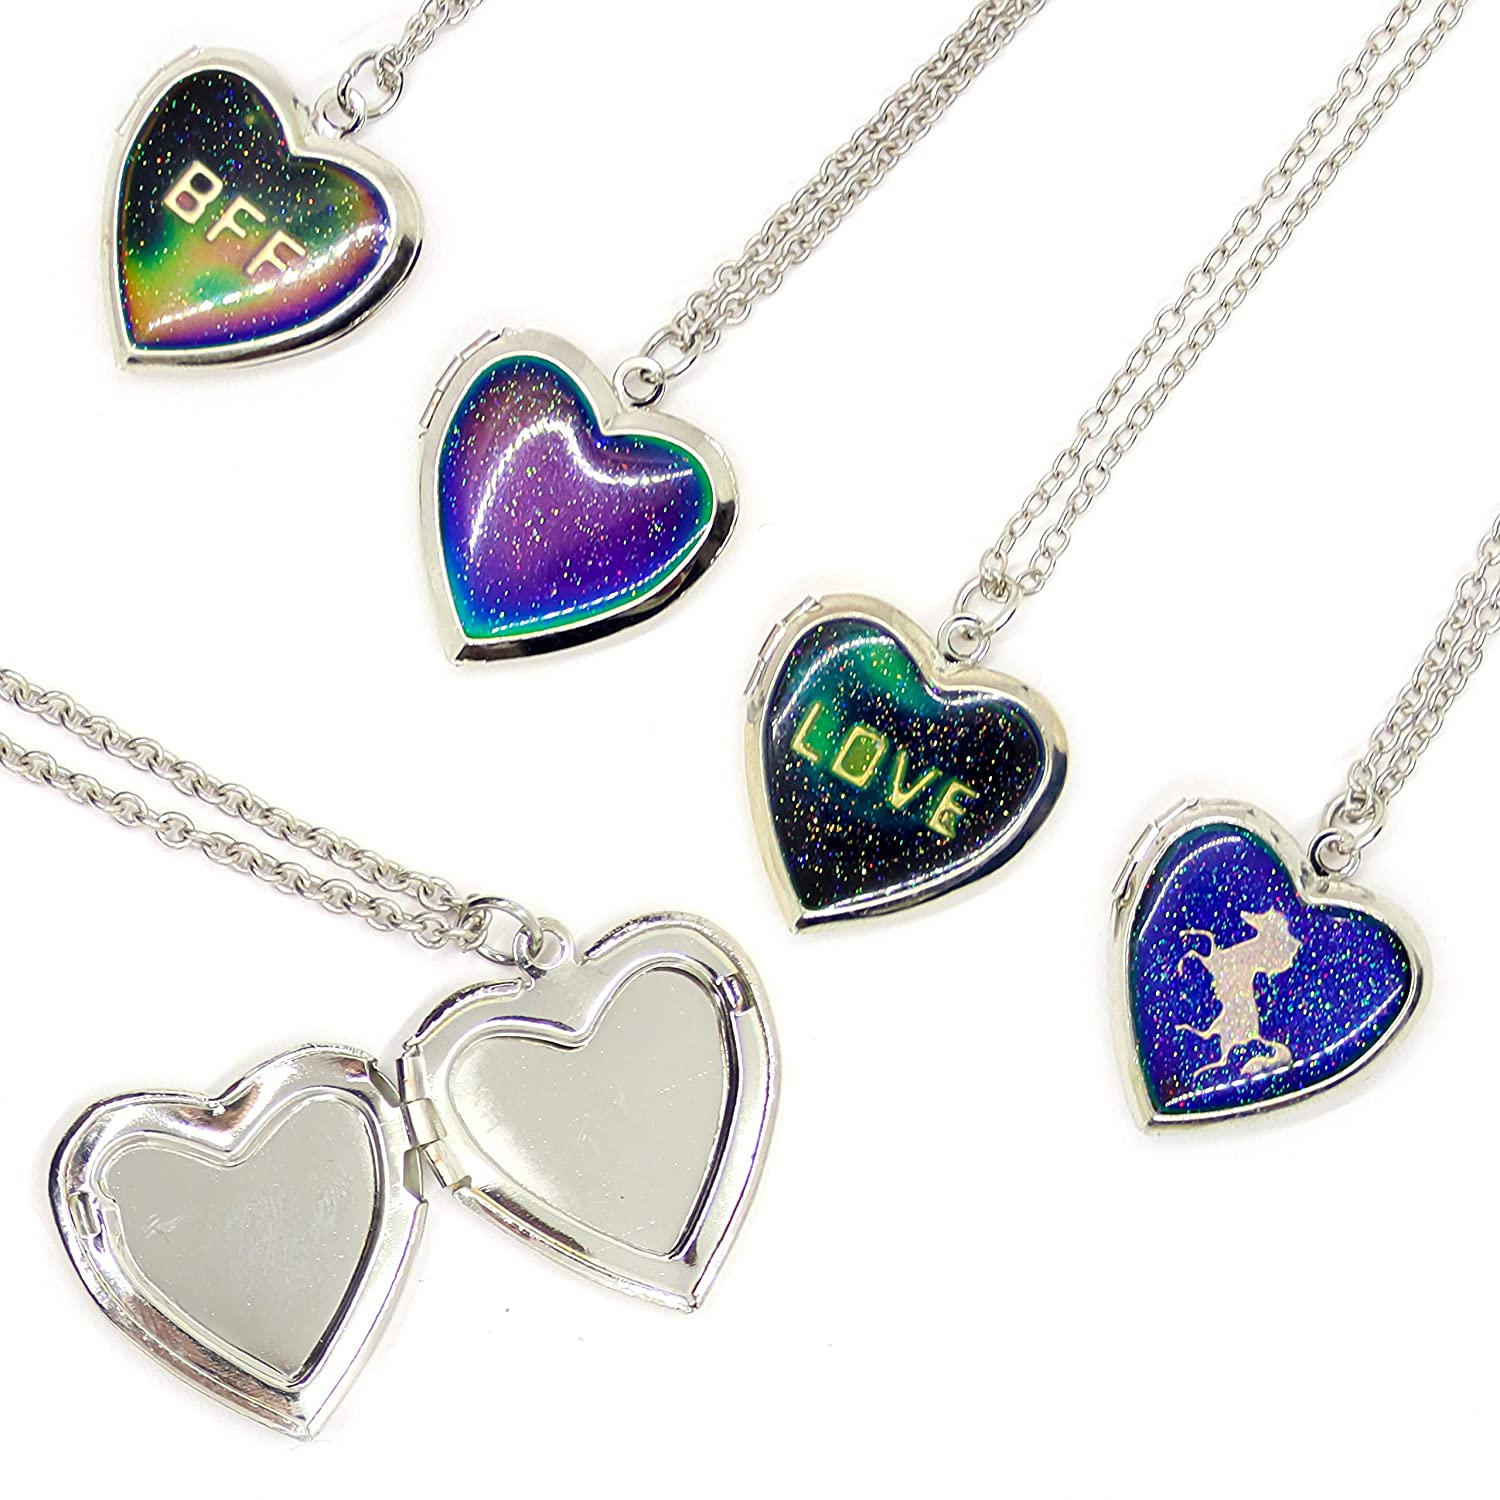 4 Mood Necklaces für Girls - Color Changing Mood Locket Necklaces mit Glitter Heart Locket Pendants - Unicorn, Bff, Love und Heart Glitter Pendants - Cute Mood Jewelry - Stocking Stuffers für Girls